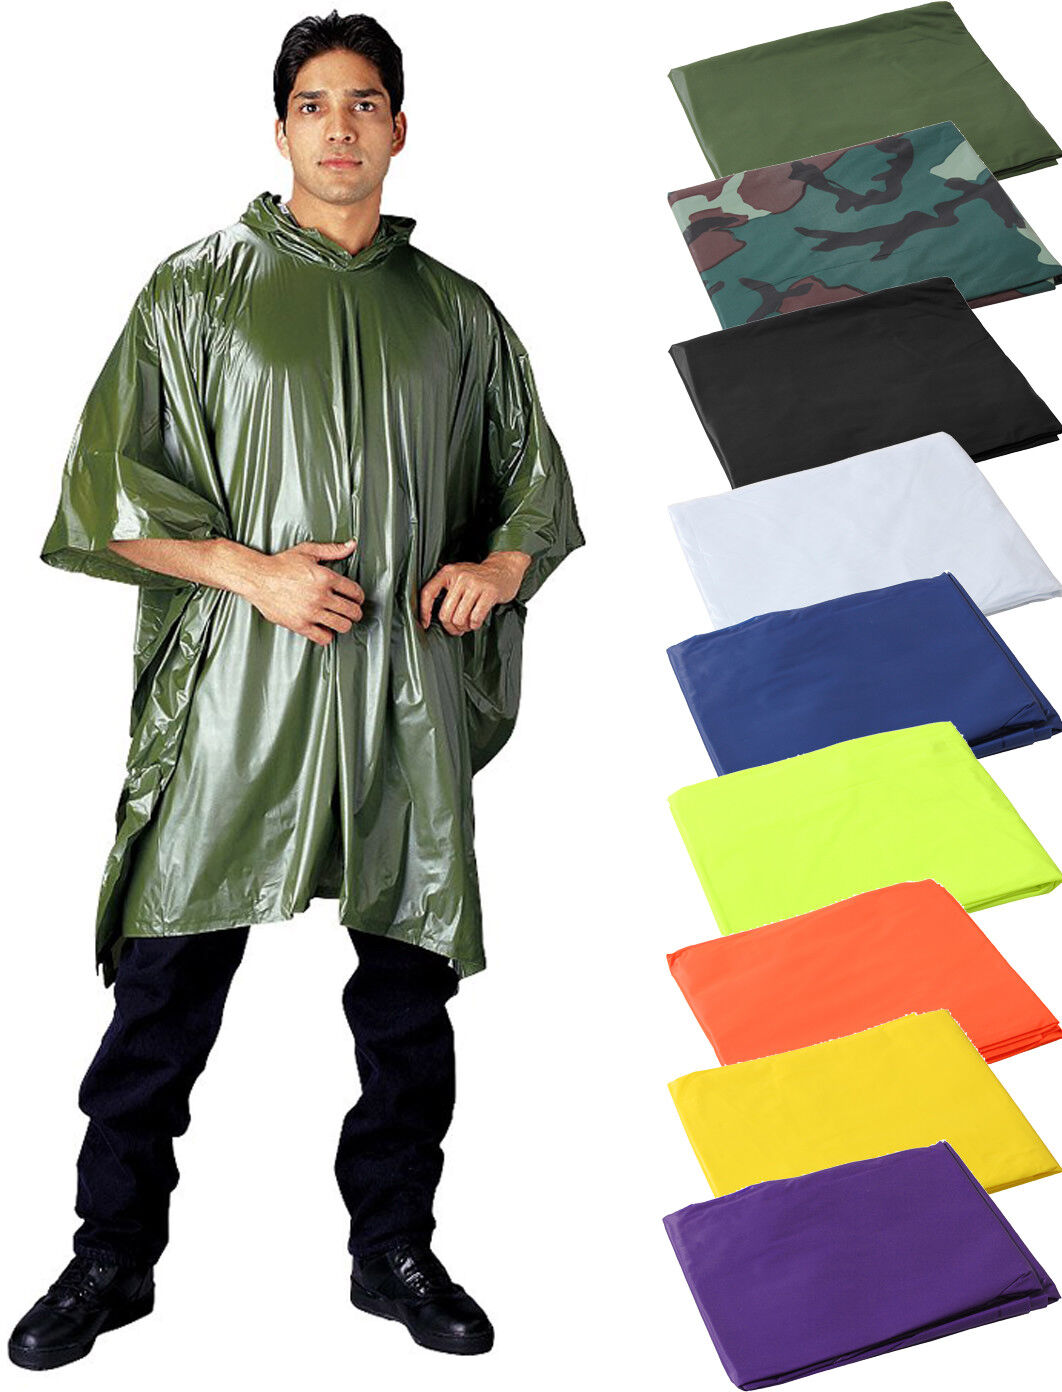 Rain Hooded Poncho, Waterproof Heavy Vinyl Reusable Emergenc